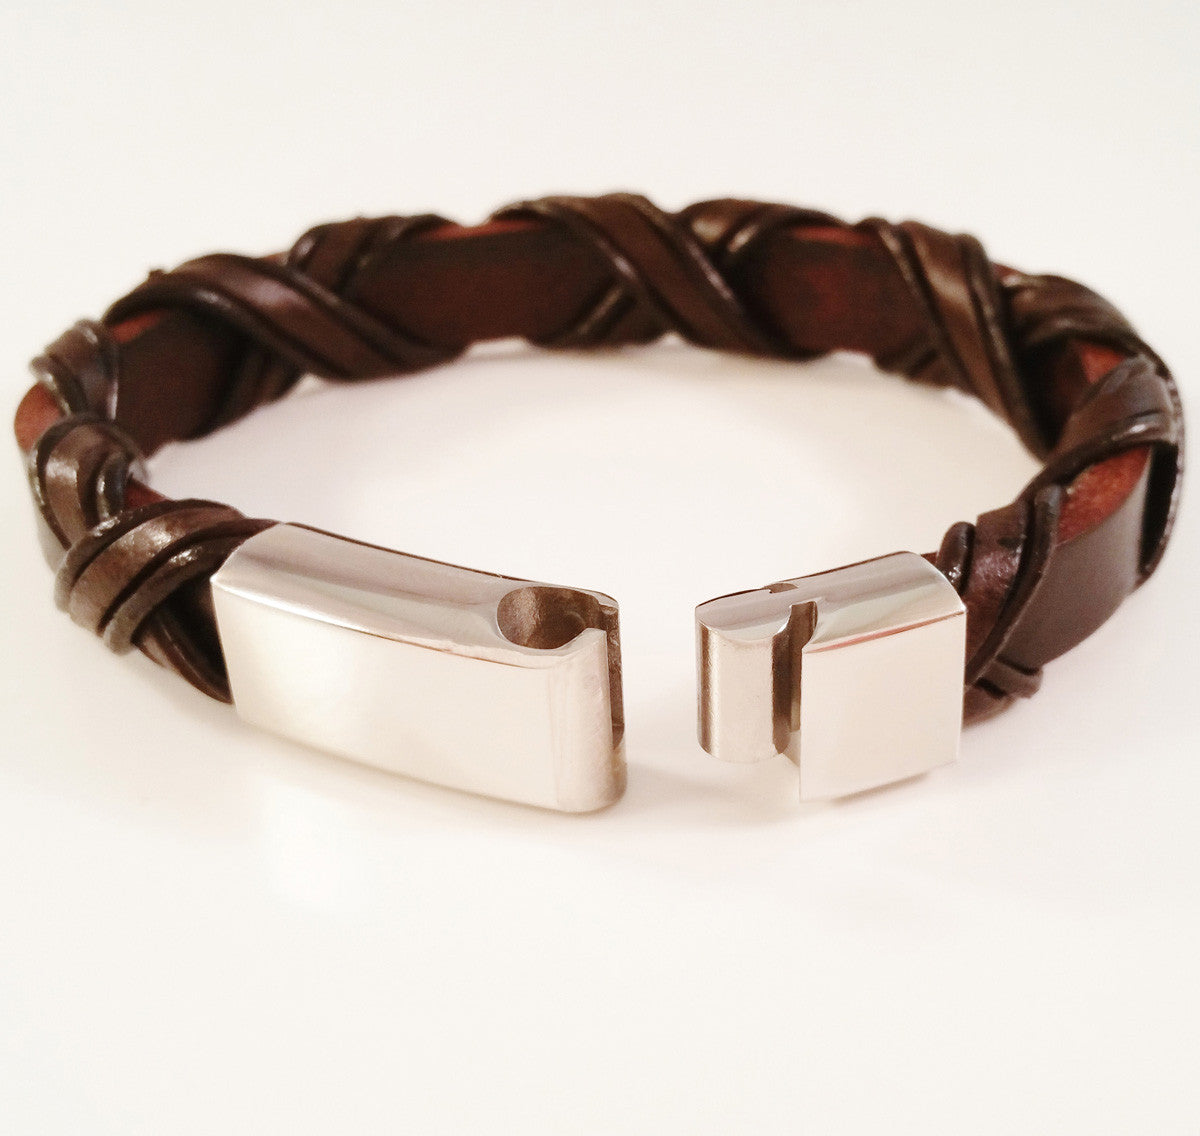 MEN'S BROWN BRAIDED WRAP COW HIDE LEATHER BRACELET WITH POLISHED STAINLESS STEEL CLASP